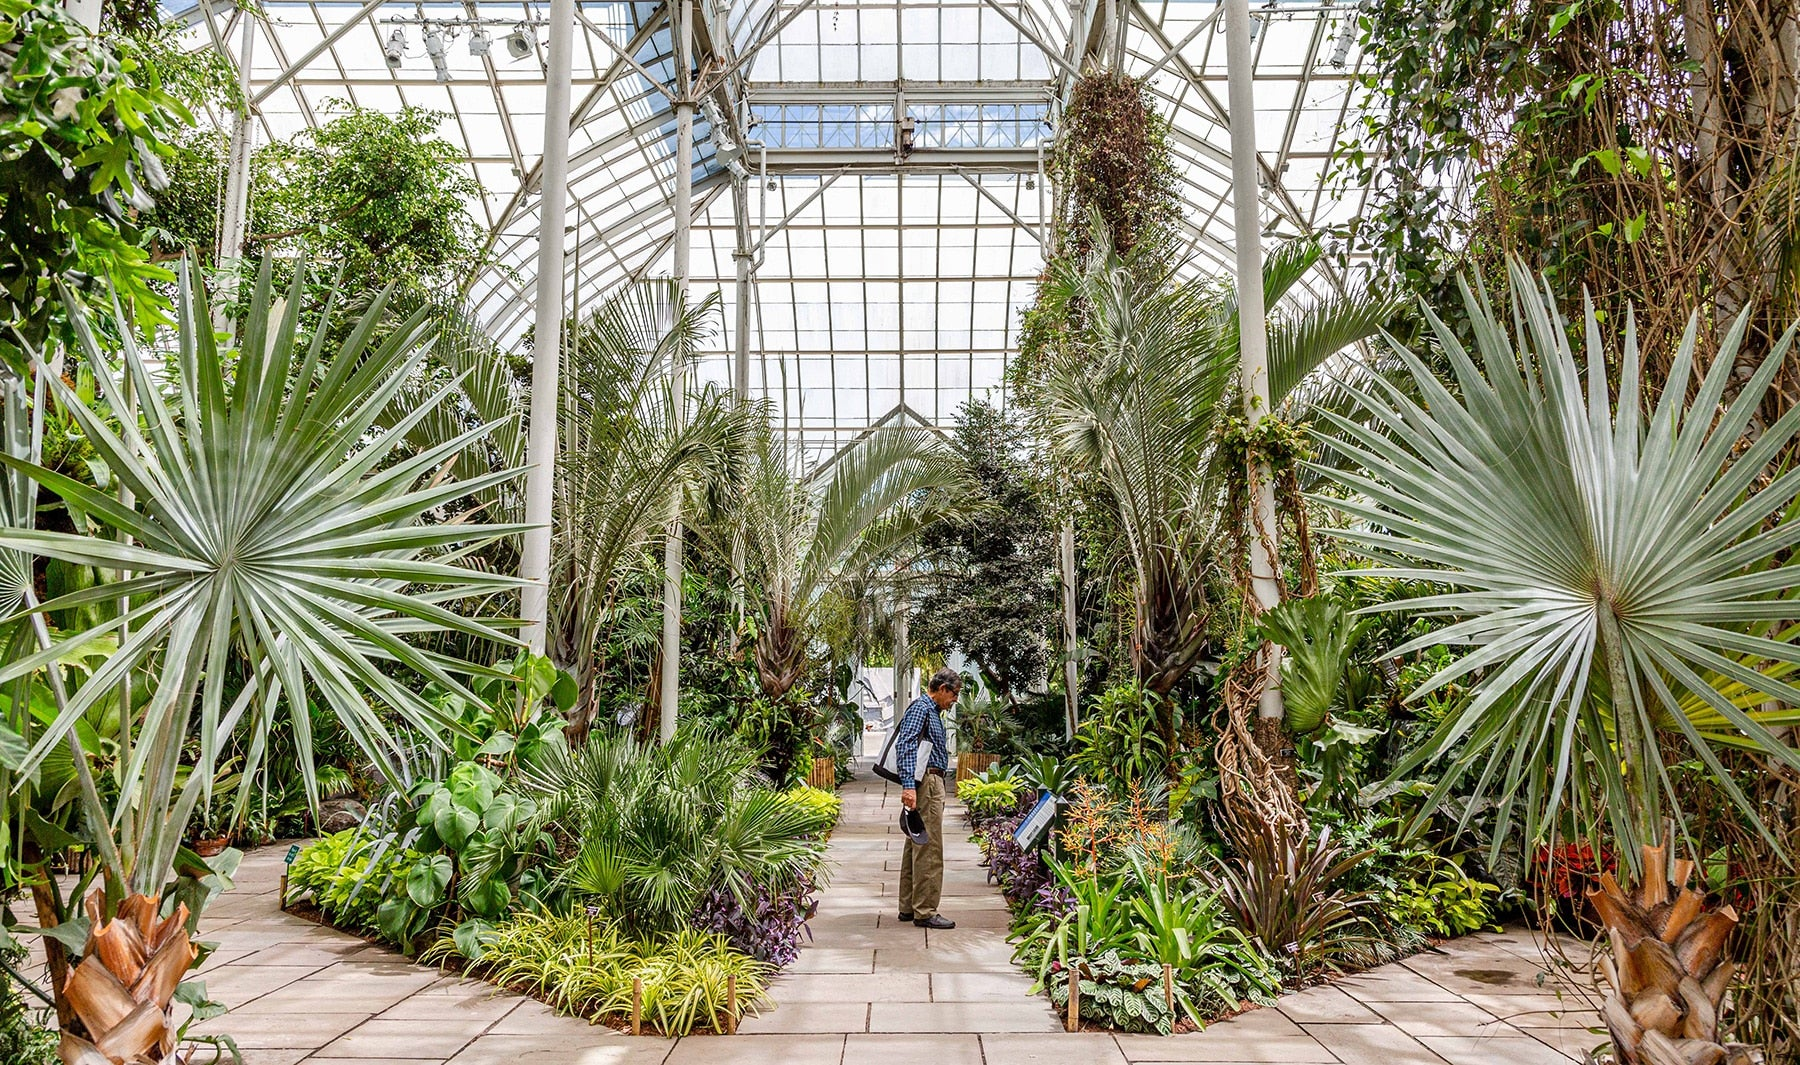 Inside the Greenhouse at the NYBG Burle Marx Show